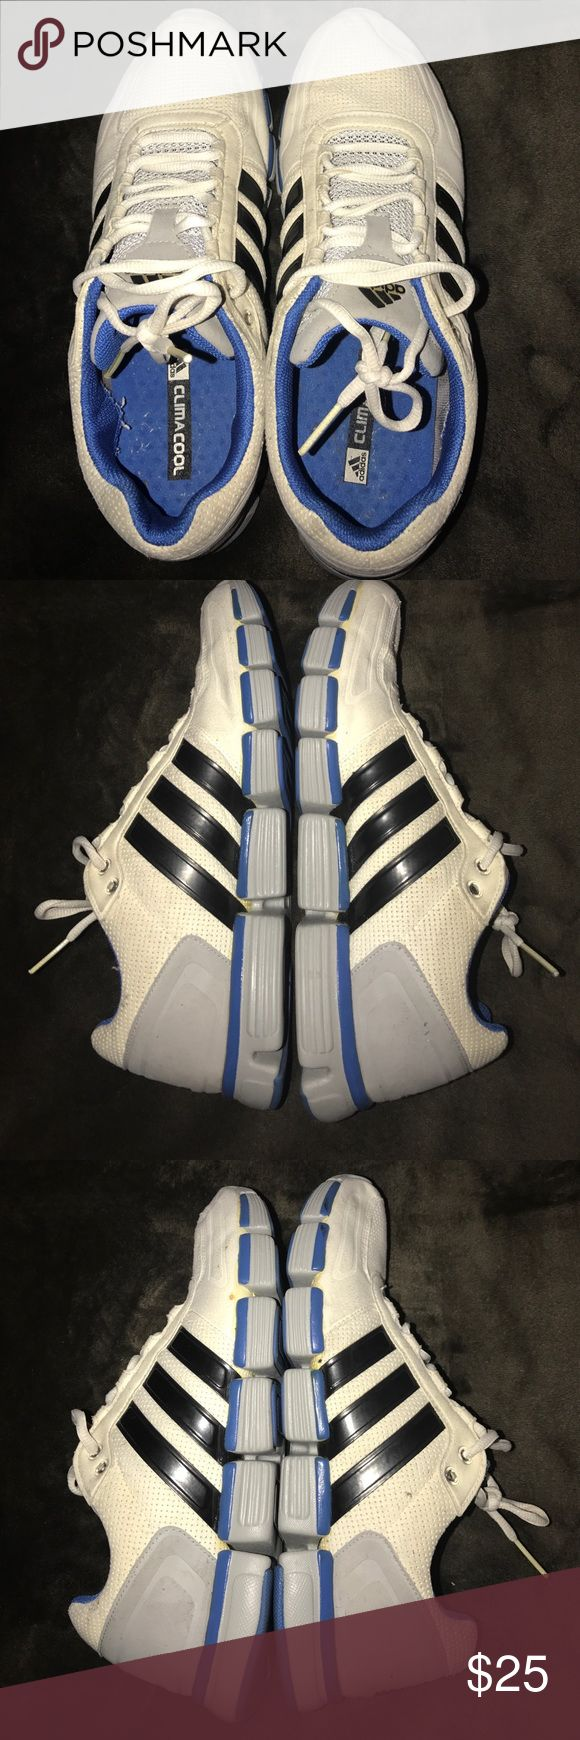 Adidas Climacool sneakers No heel drag, selling just the sneakers only, very good condition Adidas Shoes Sneakers